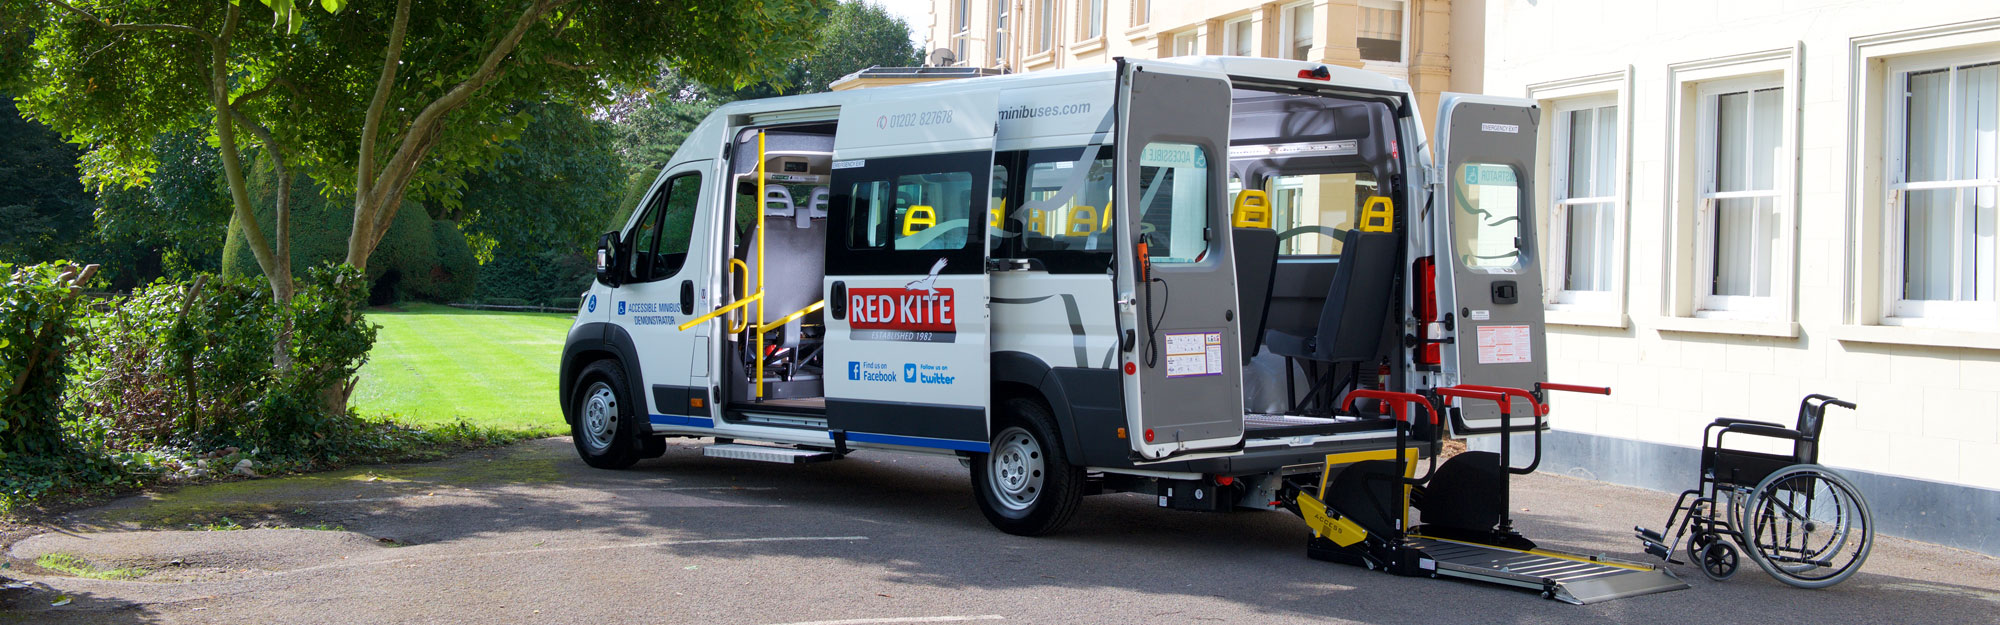 Red Kite Accessible Demonstrator Minibus